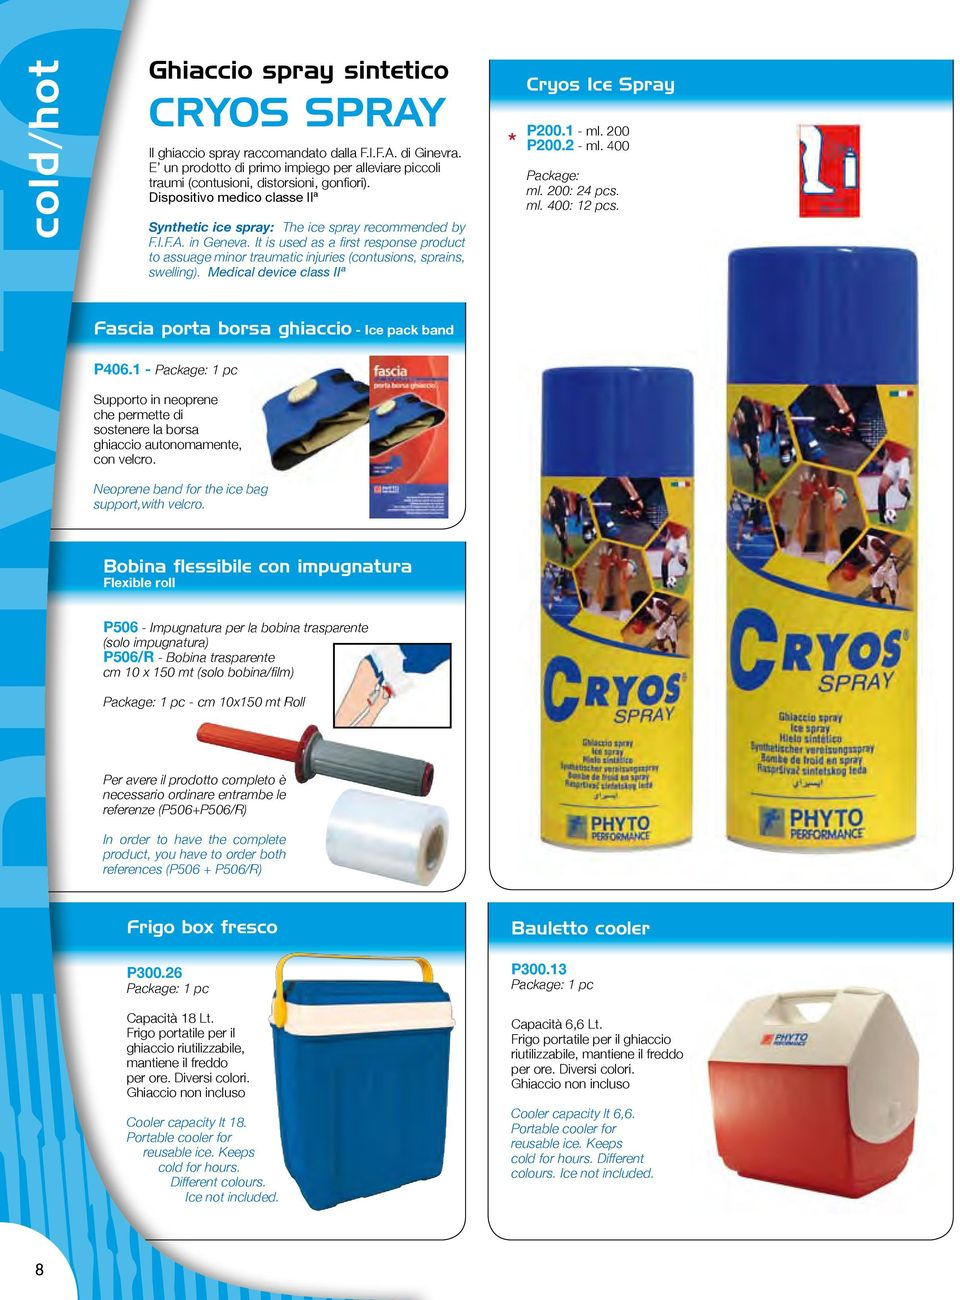 Mdical dvic class IIª Cryos Ic Spray P200.1 - ml. 200 P200.2 - ml. 400 Packag: ml. 200: 24 pcs. ml. 400: 12 pcs. Fascia porta borsa ghiaccio - Ic pack band P406.